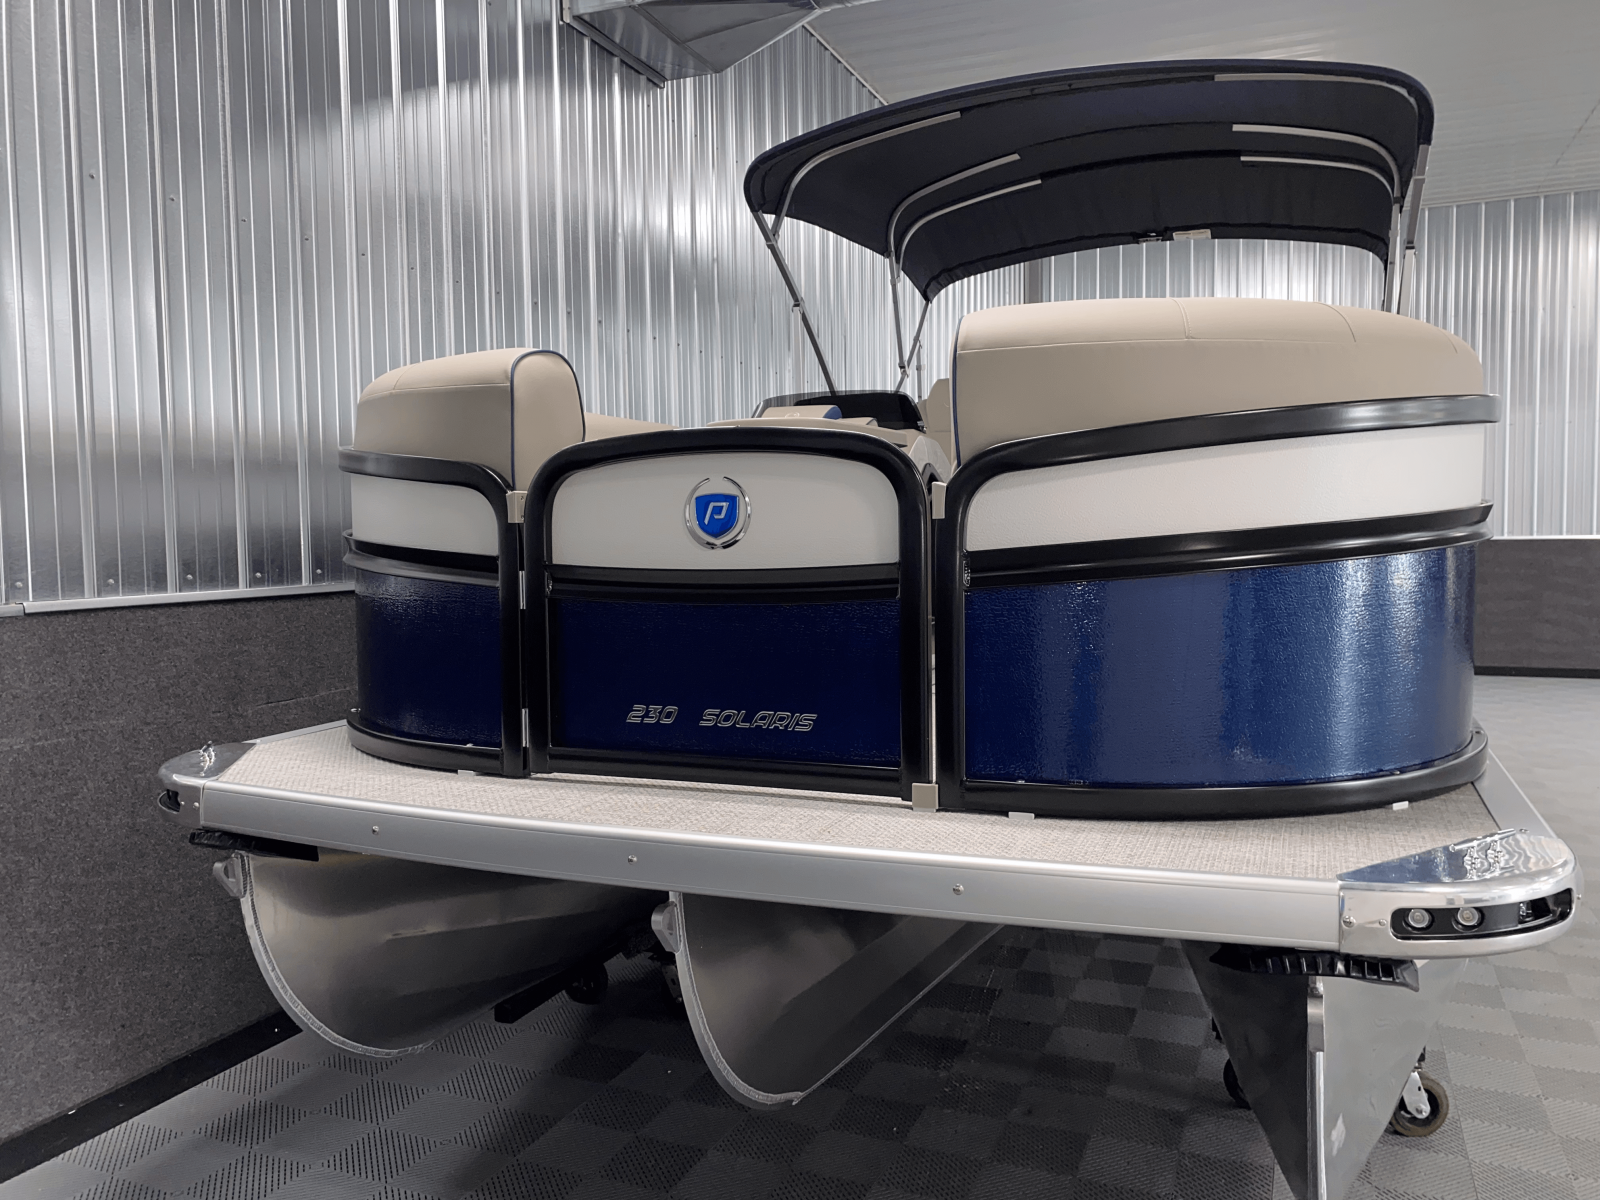 Tritoon Package of the 2022 Premier 230 Solaris RL Tritoon Boat